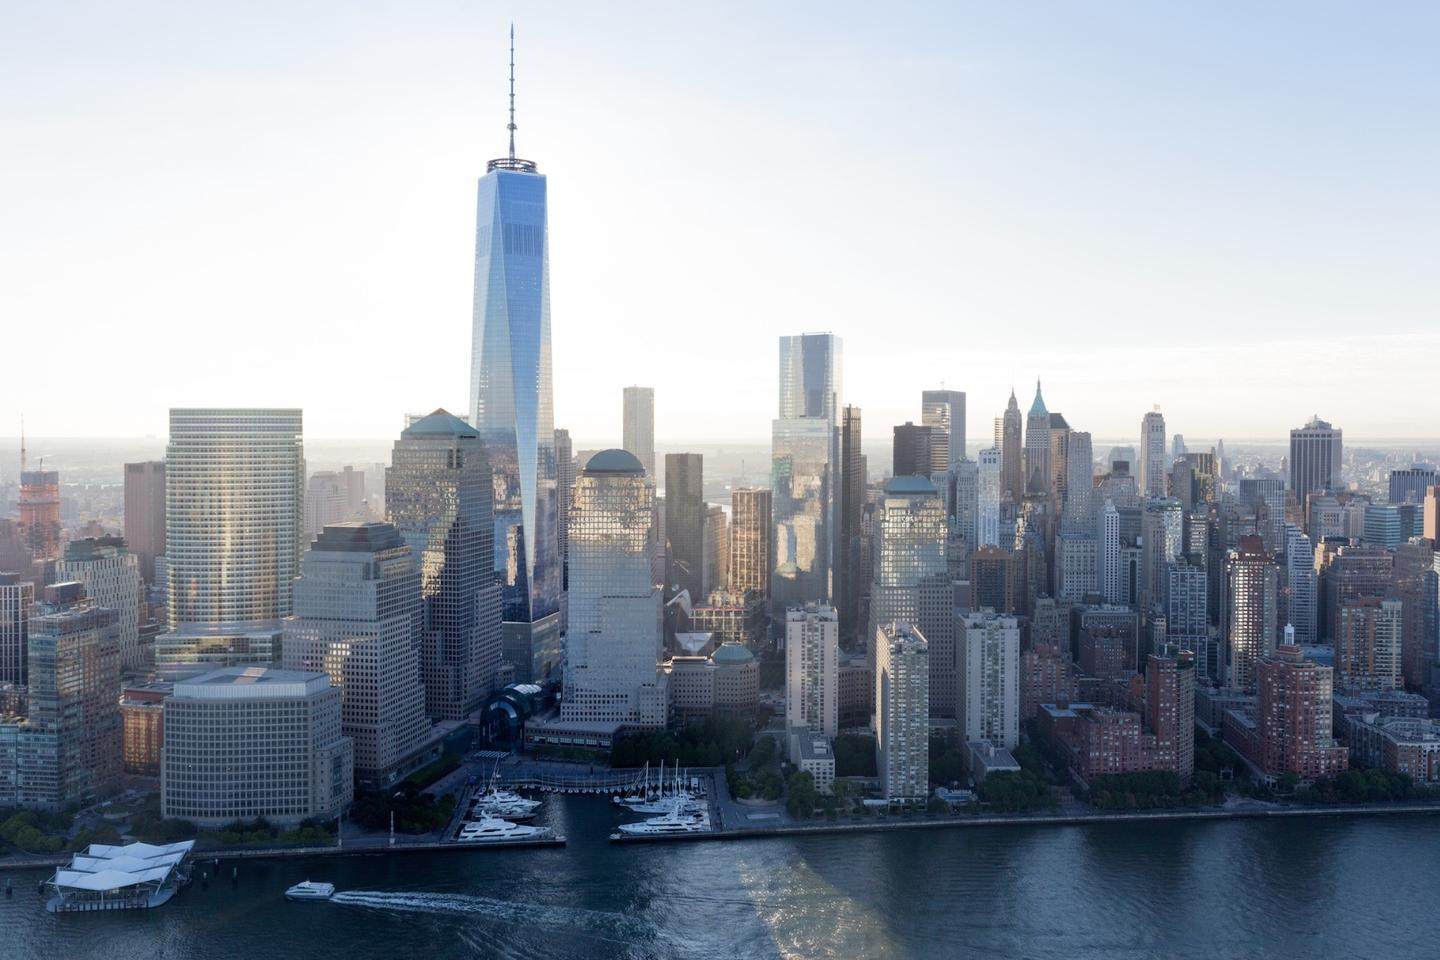 The One World Trade Center rises to a symbolic height of exactly 1,776 ft to mark the US Declaration of Independence